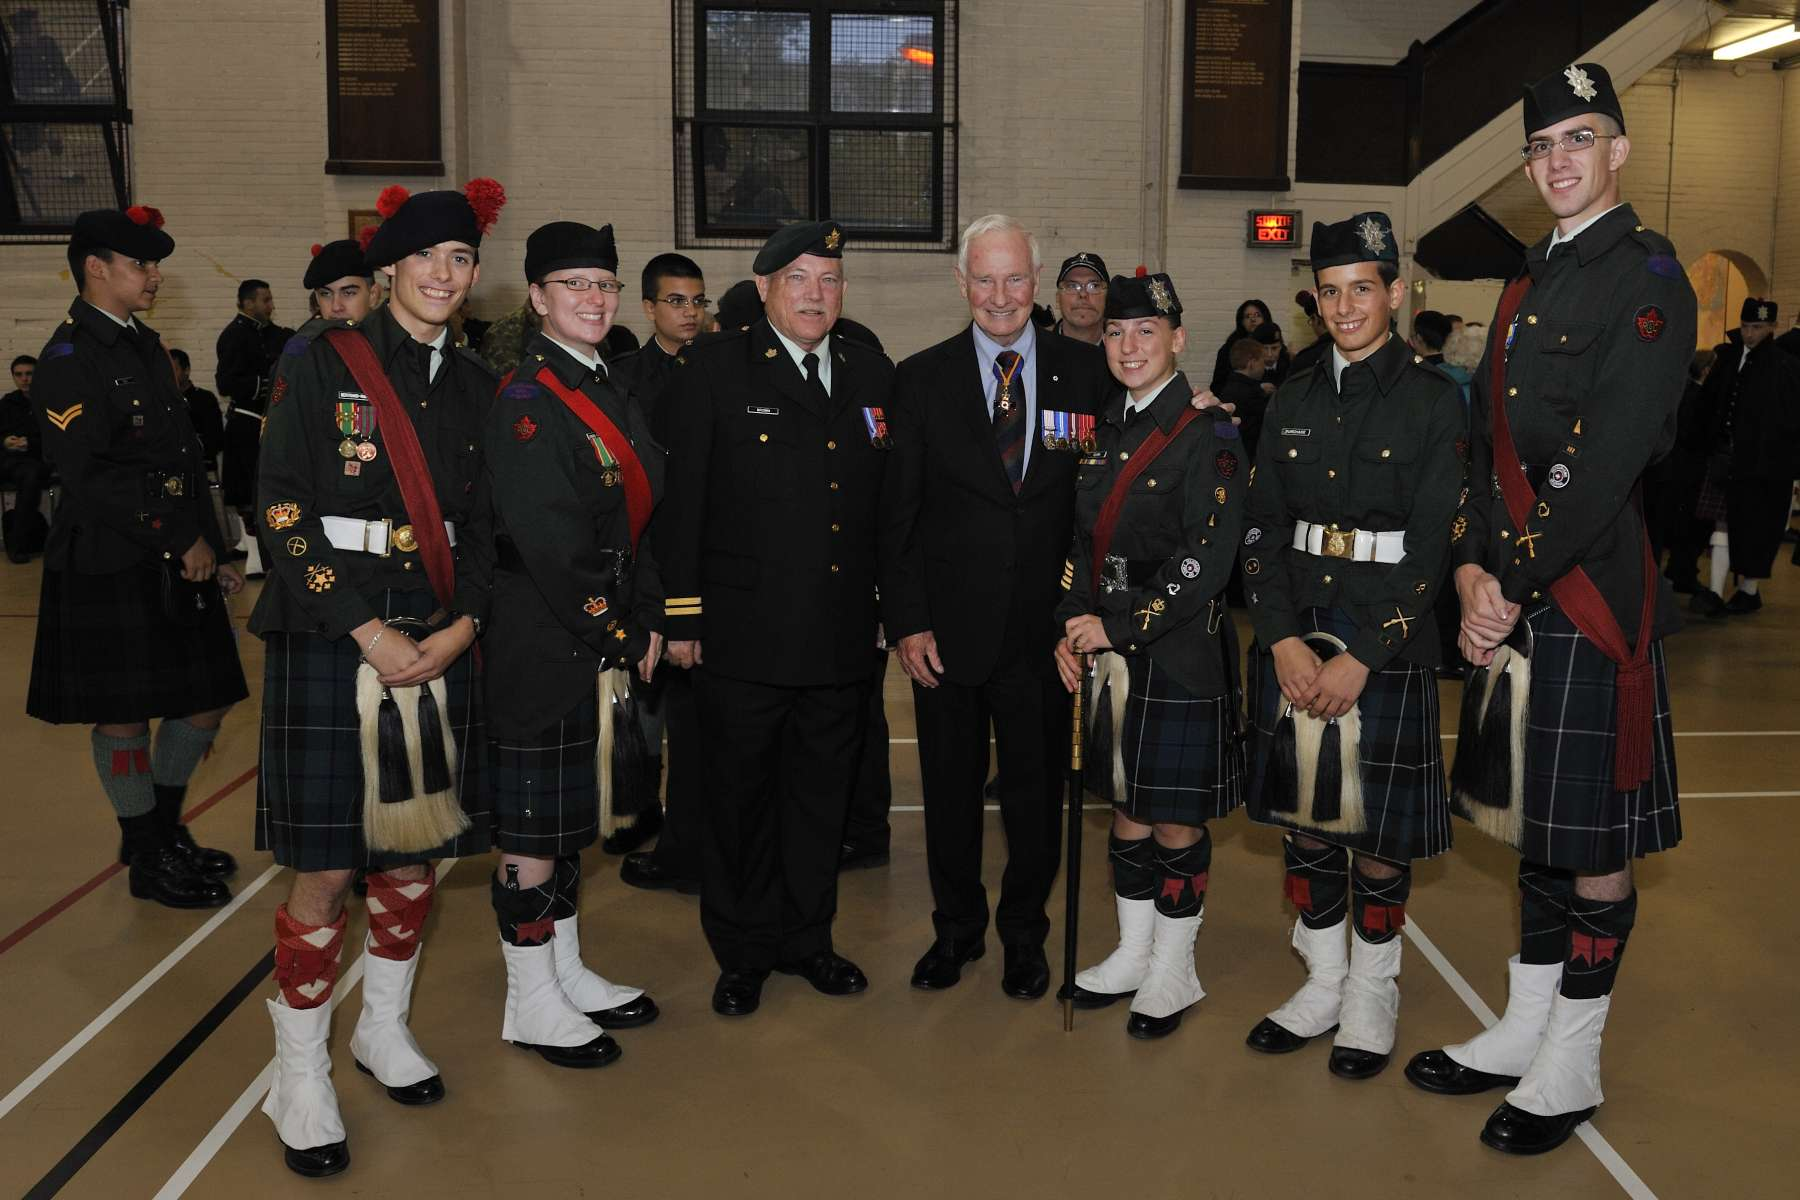 Following the unveiling, His Excellency met with cadets from The Black Watch.